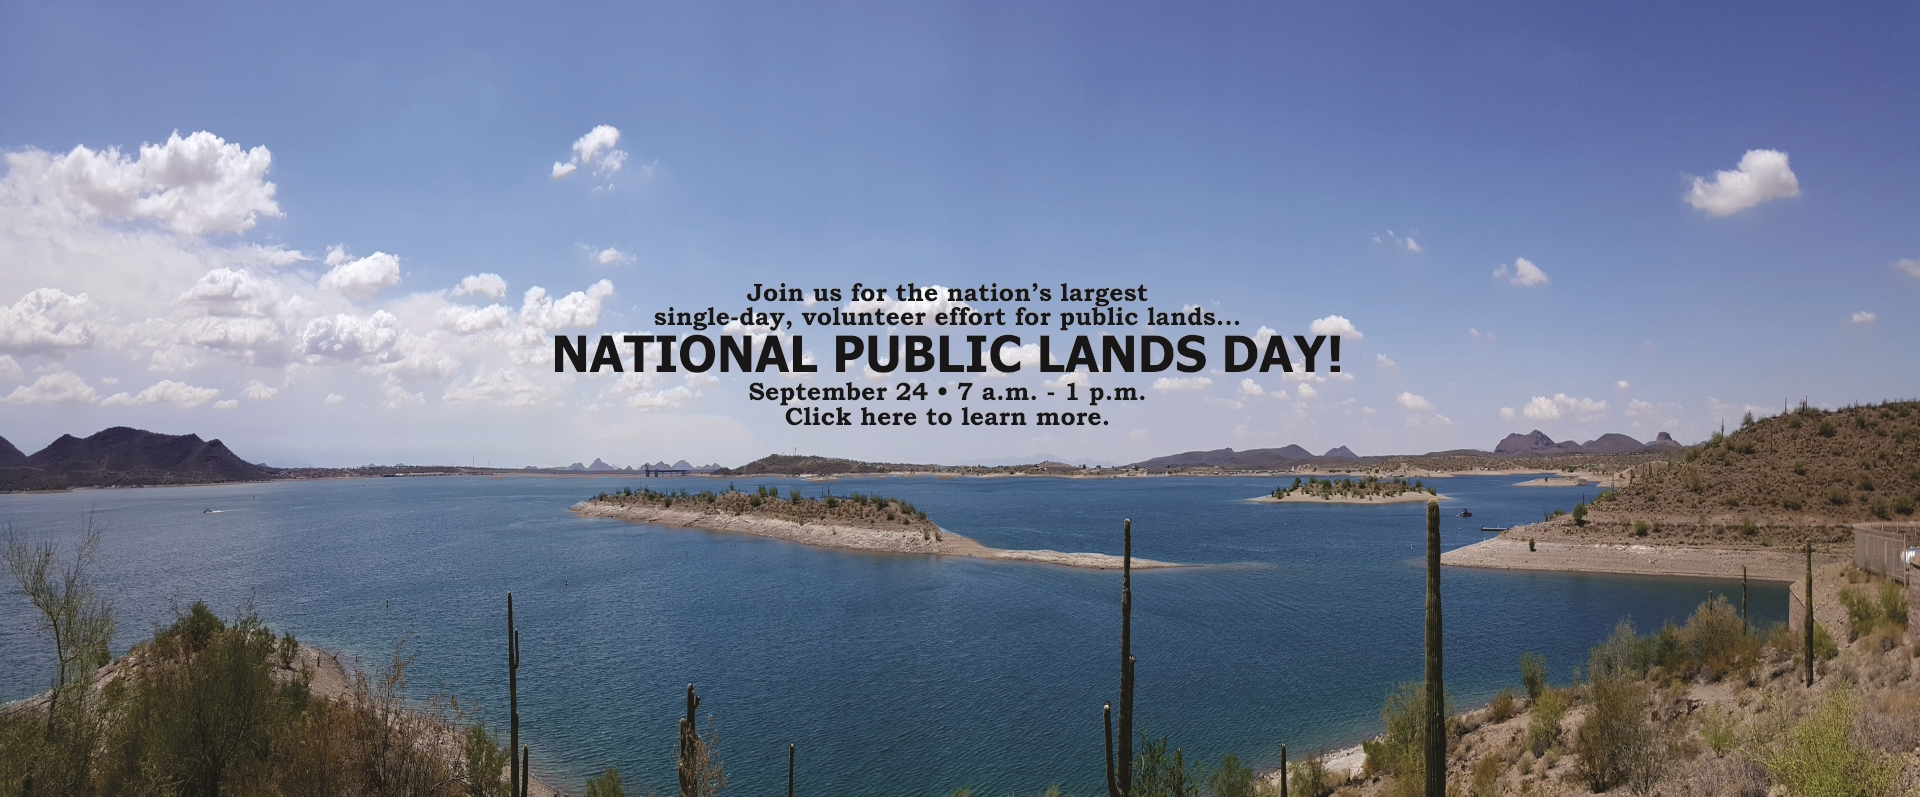 NationalPublicLandsDay